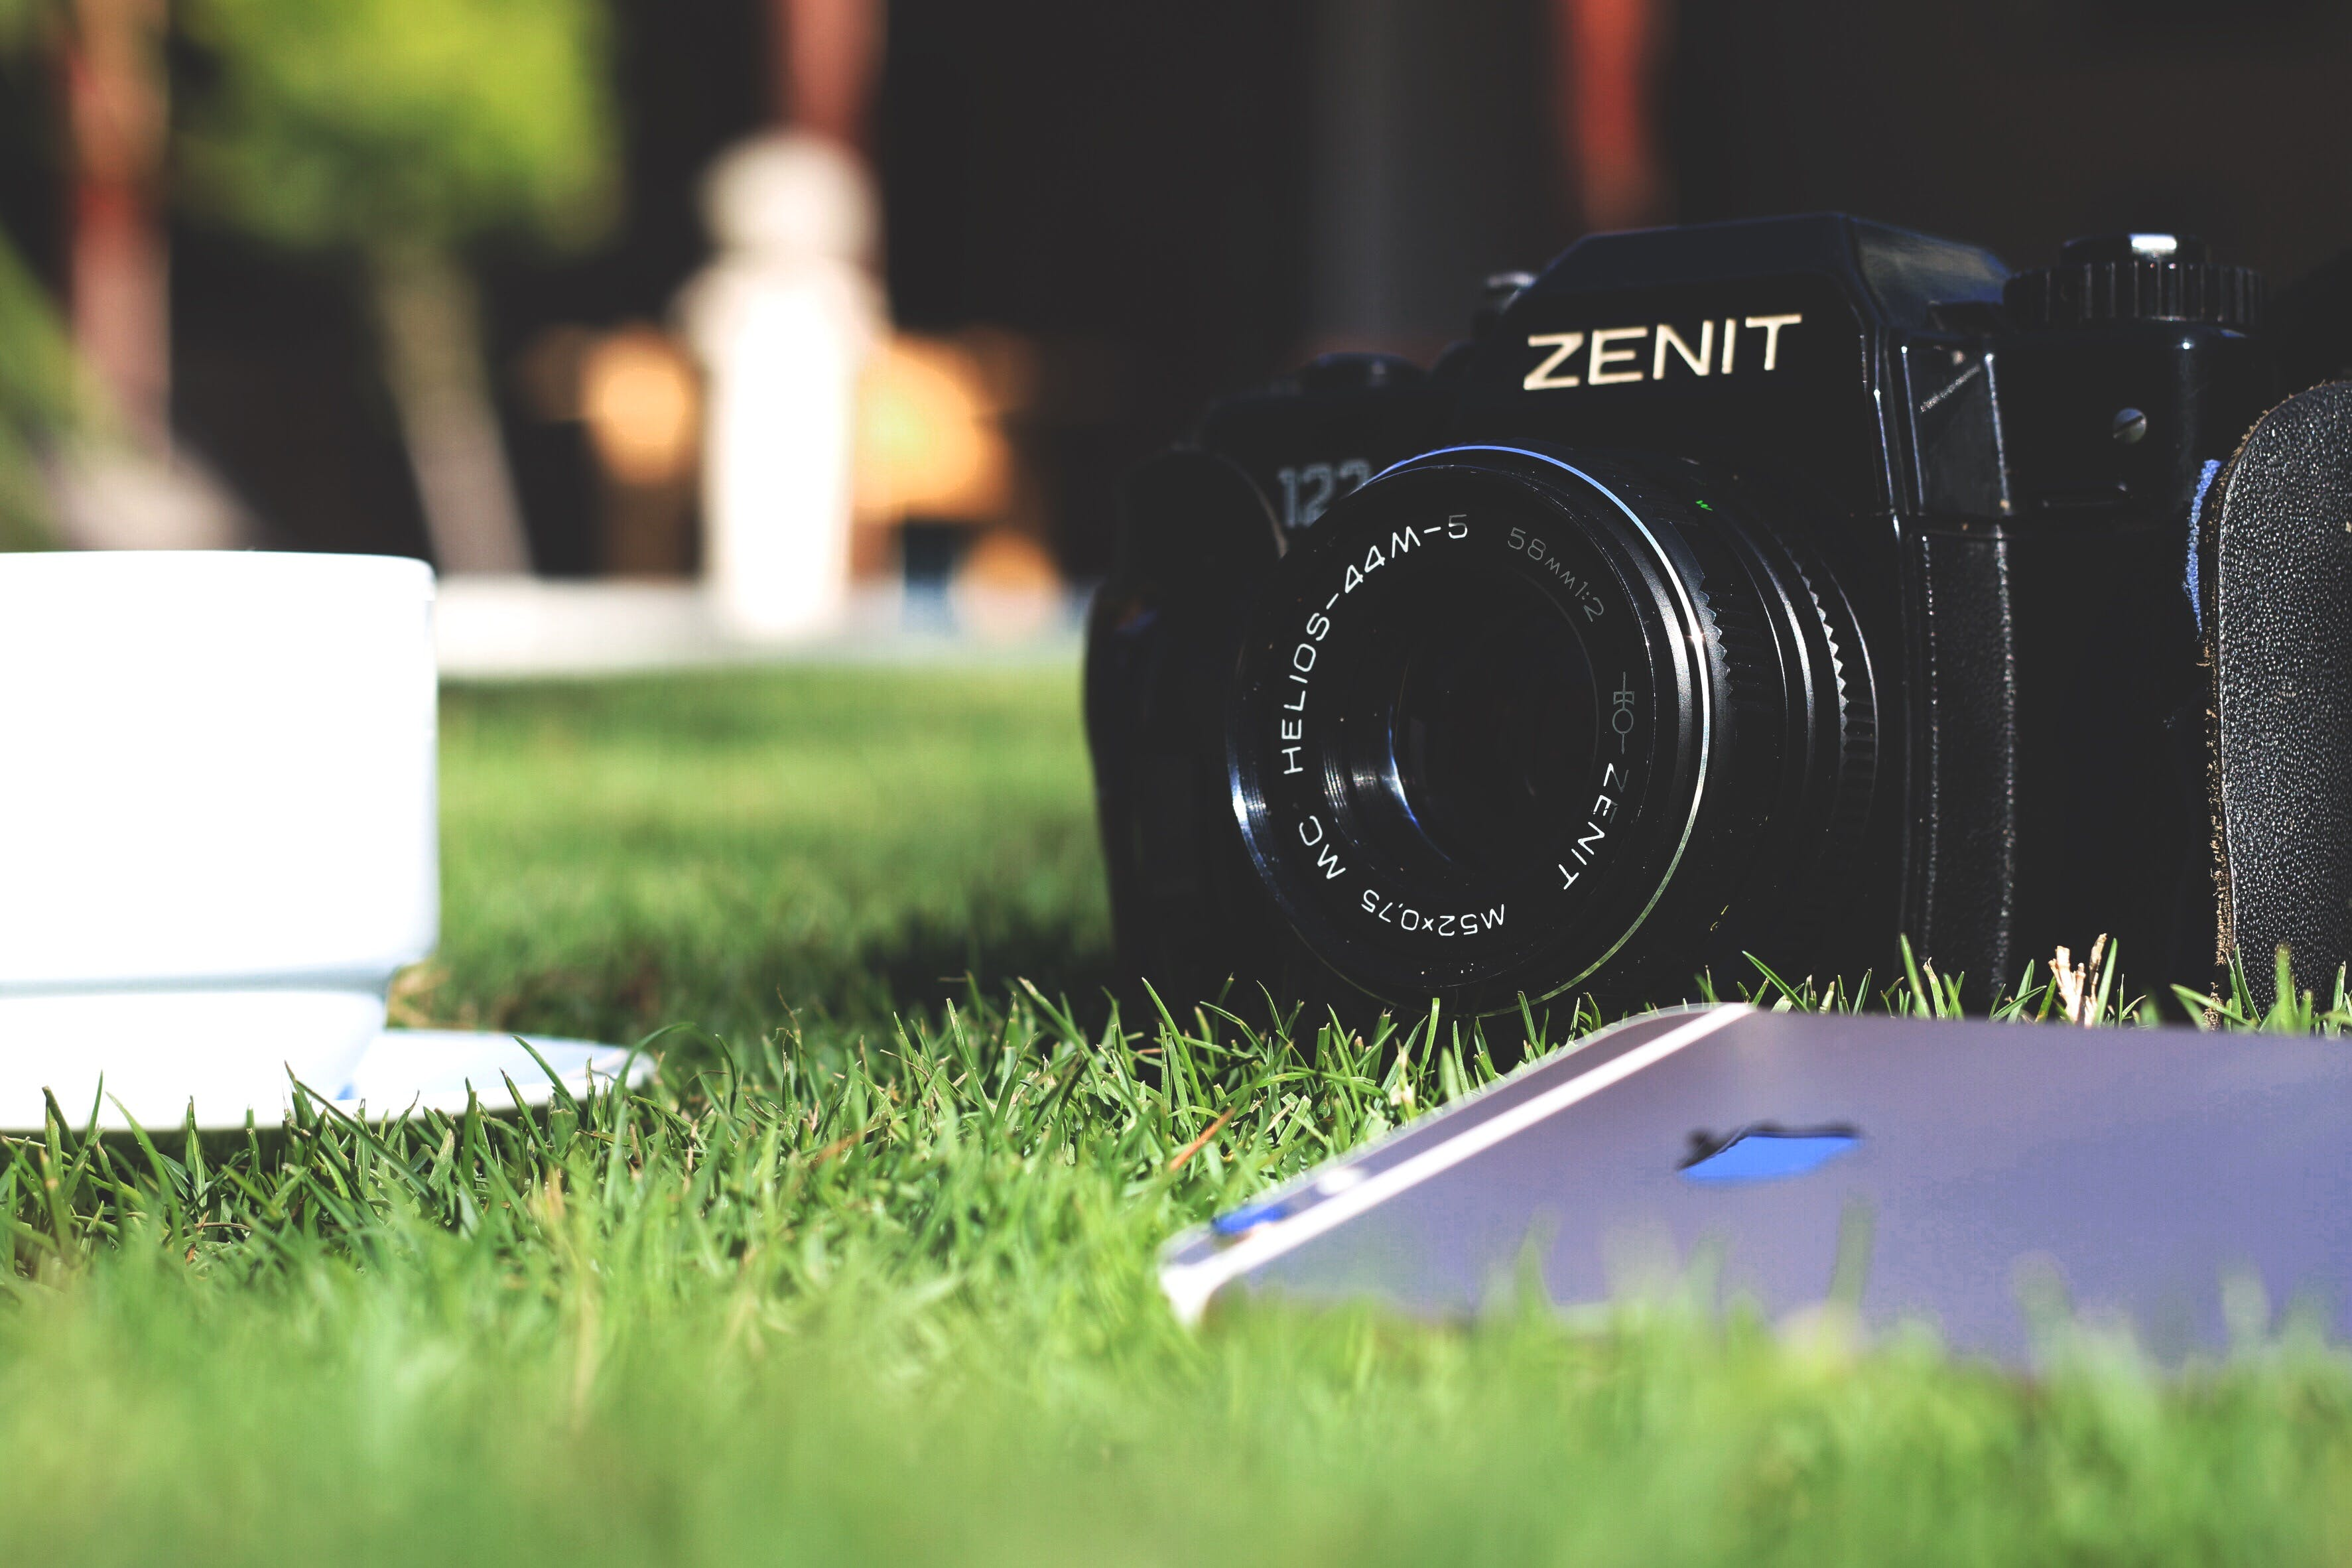 Black Zenit Dslr Camera in Shallow Focus Photography